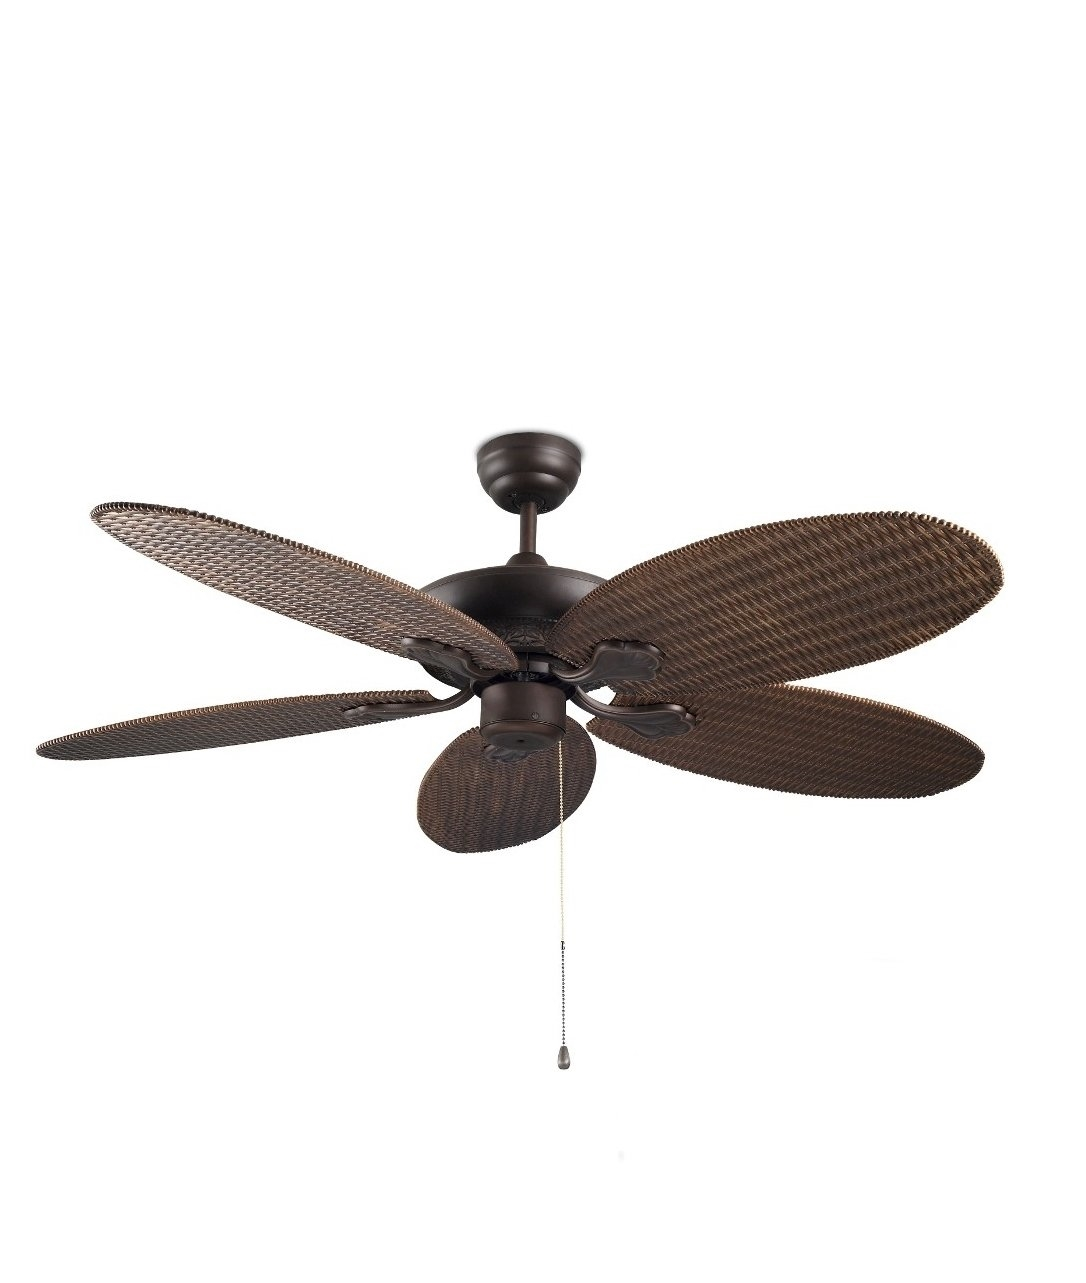 Rattan Style Ceiling Fan With Pull Cords And No Light Feature